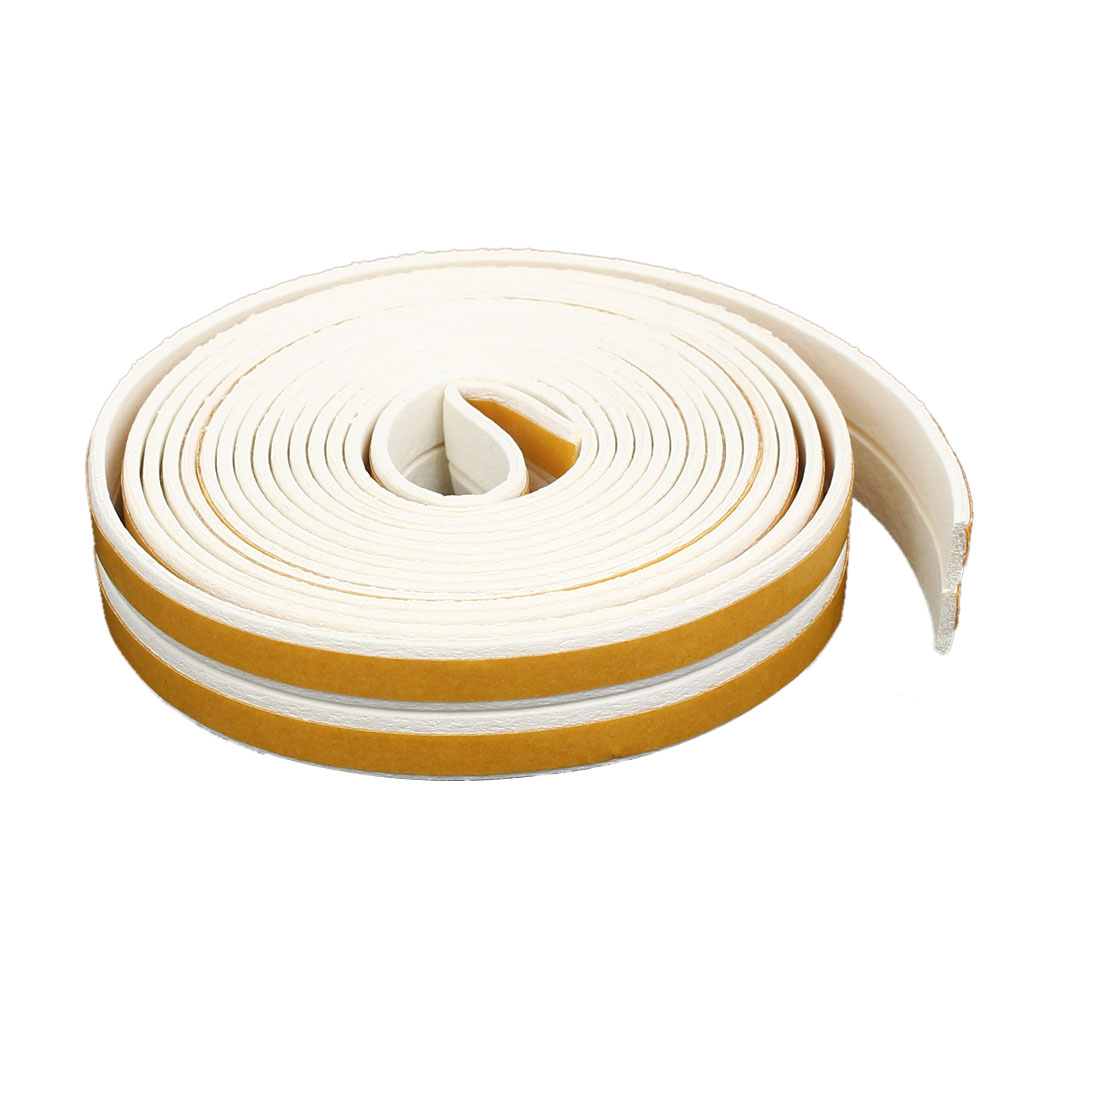 9.8 Feet EPDM Foam Rubber Self Adhesive Weatherstrip Seal Strip White 2pcs